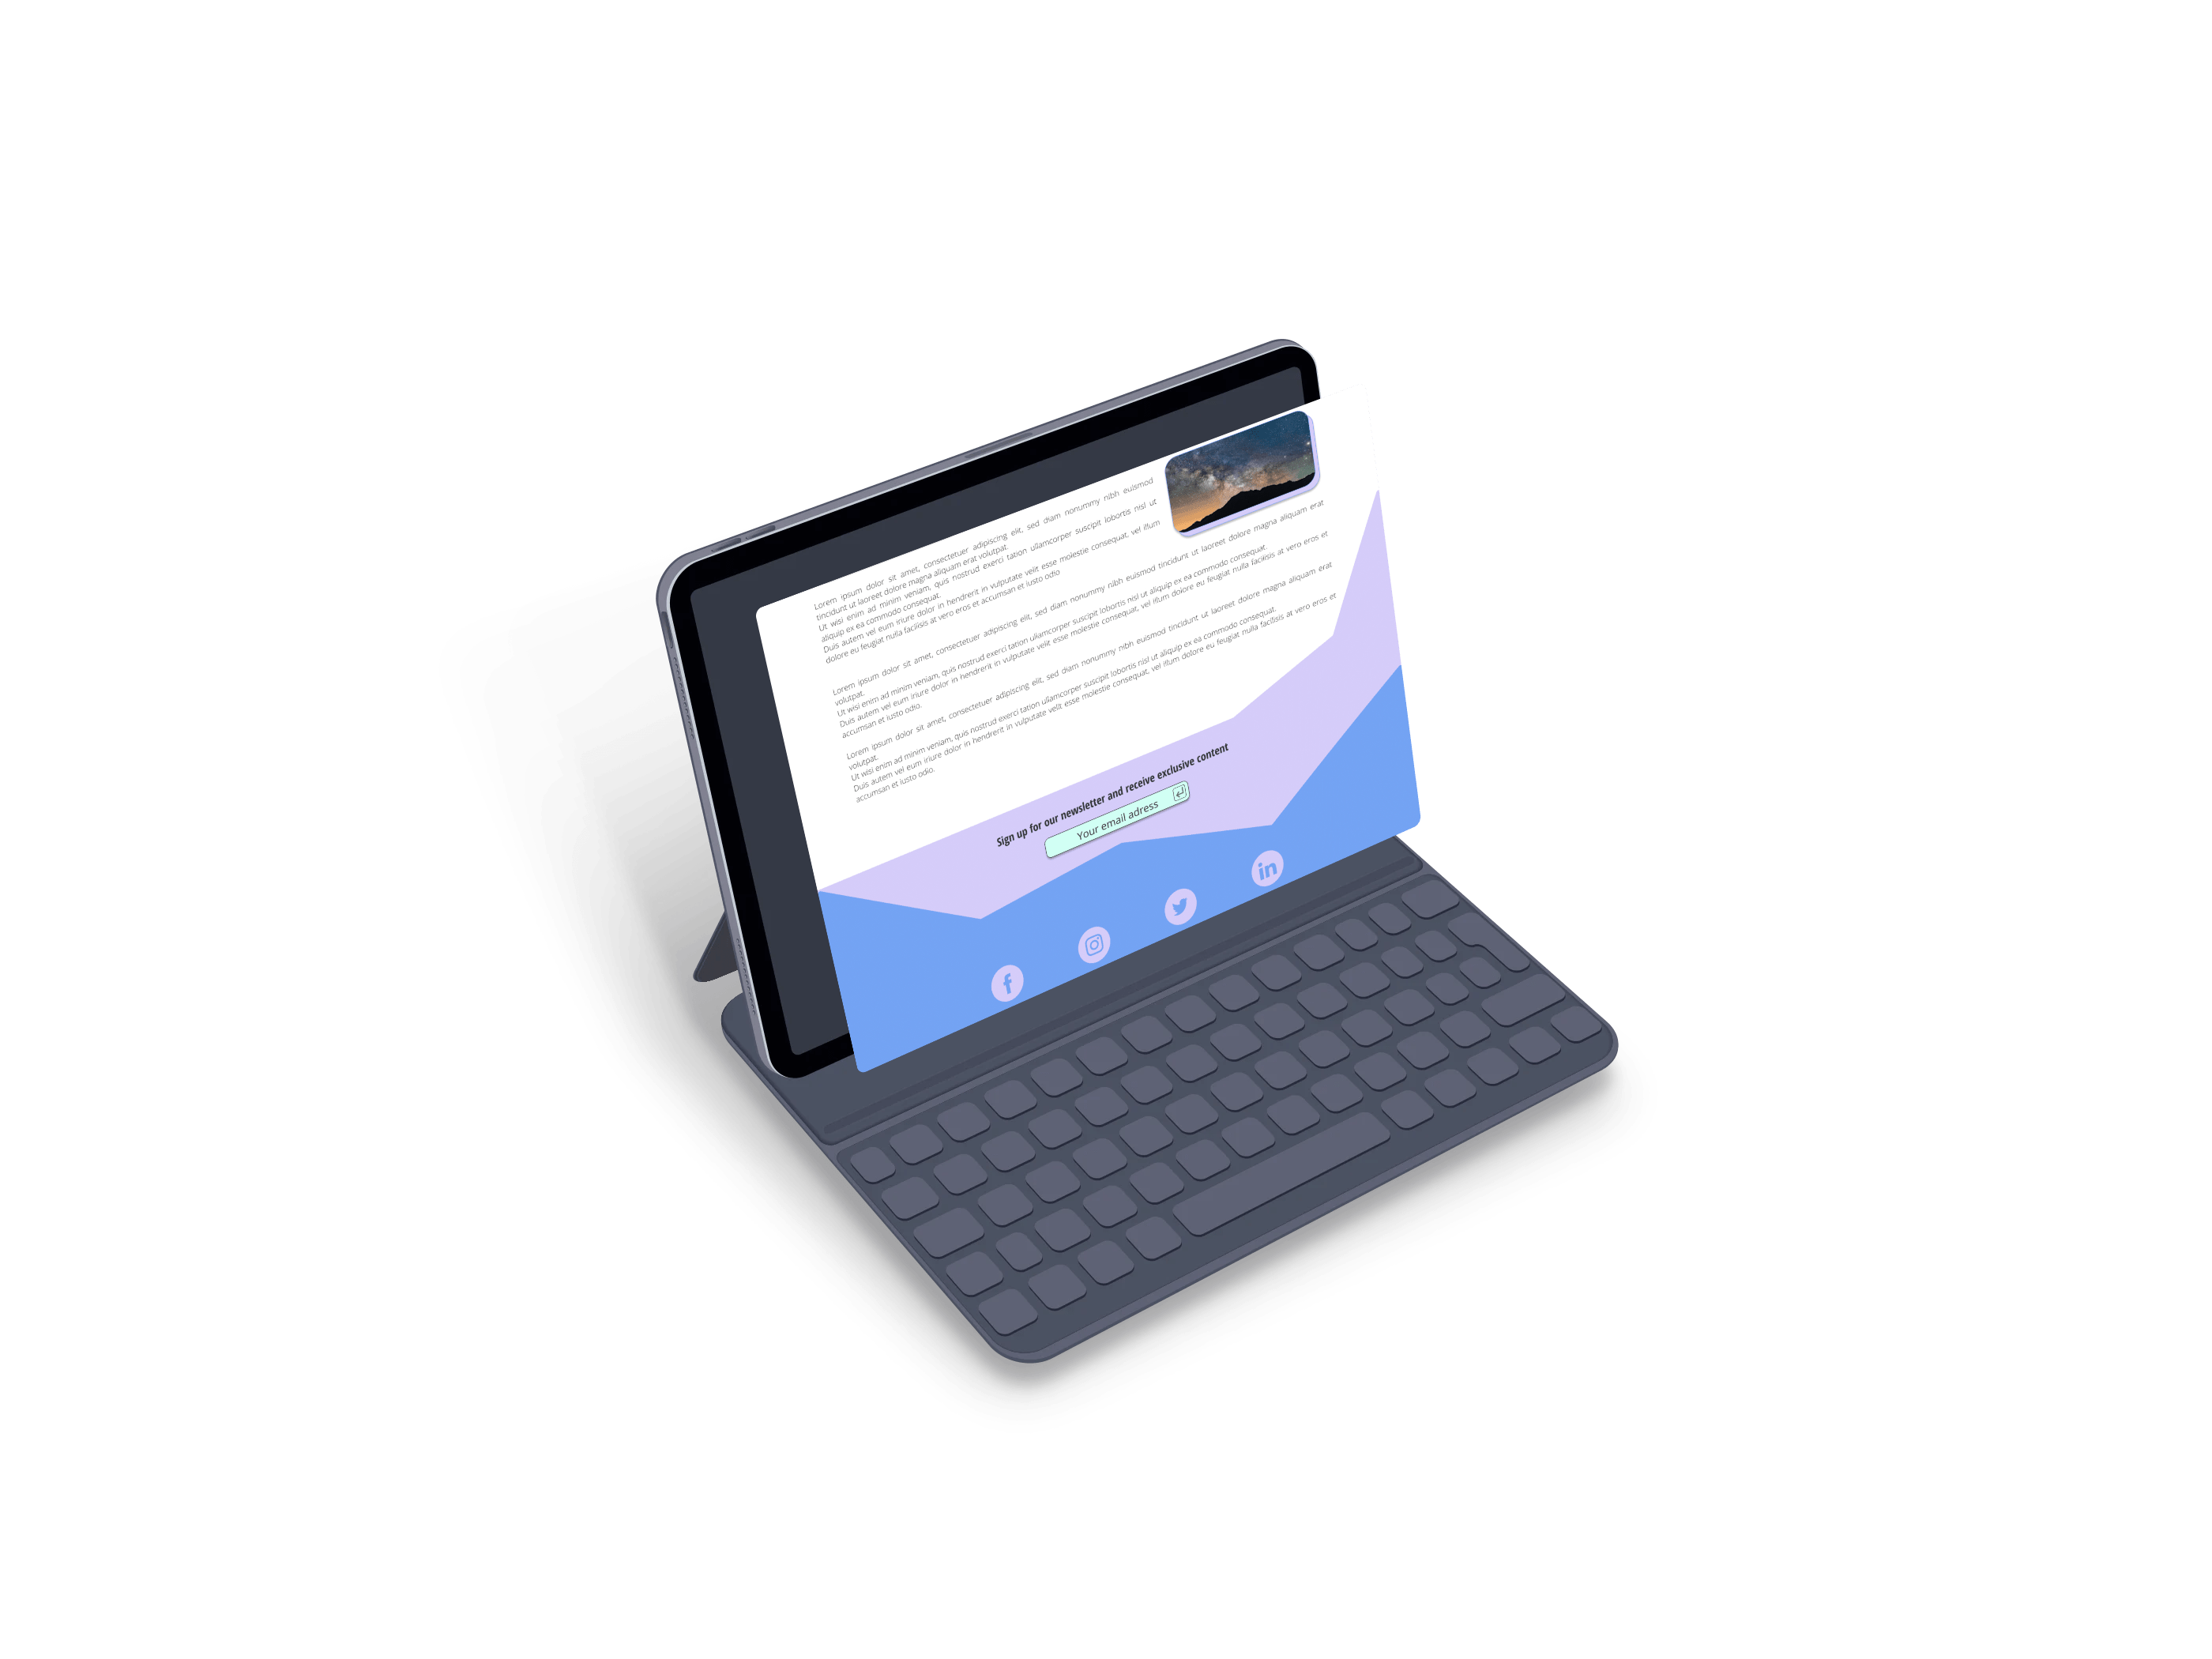 clean-ipad-screen-mockup-with-keyboard